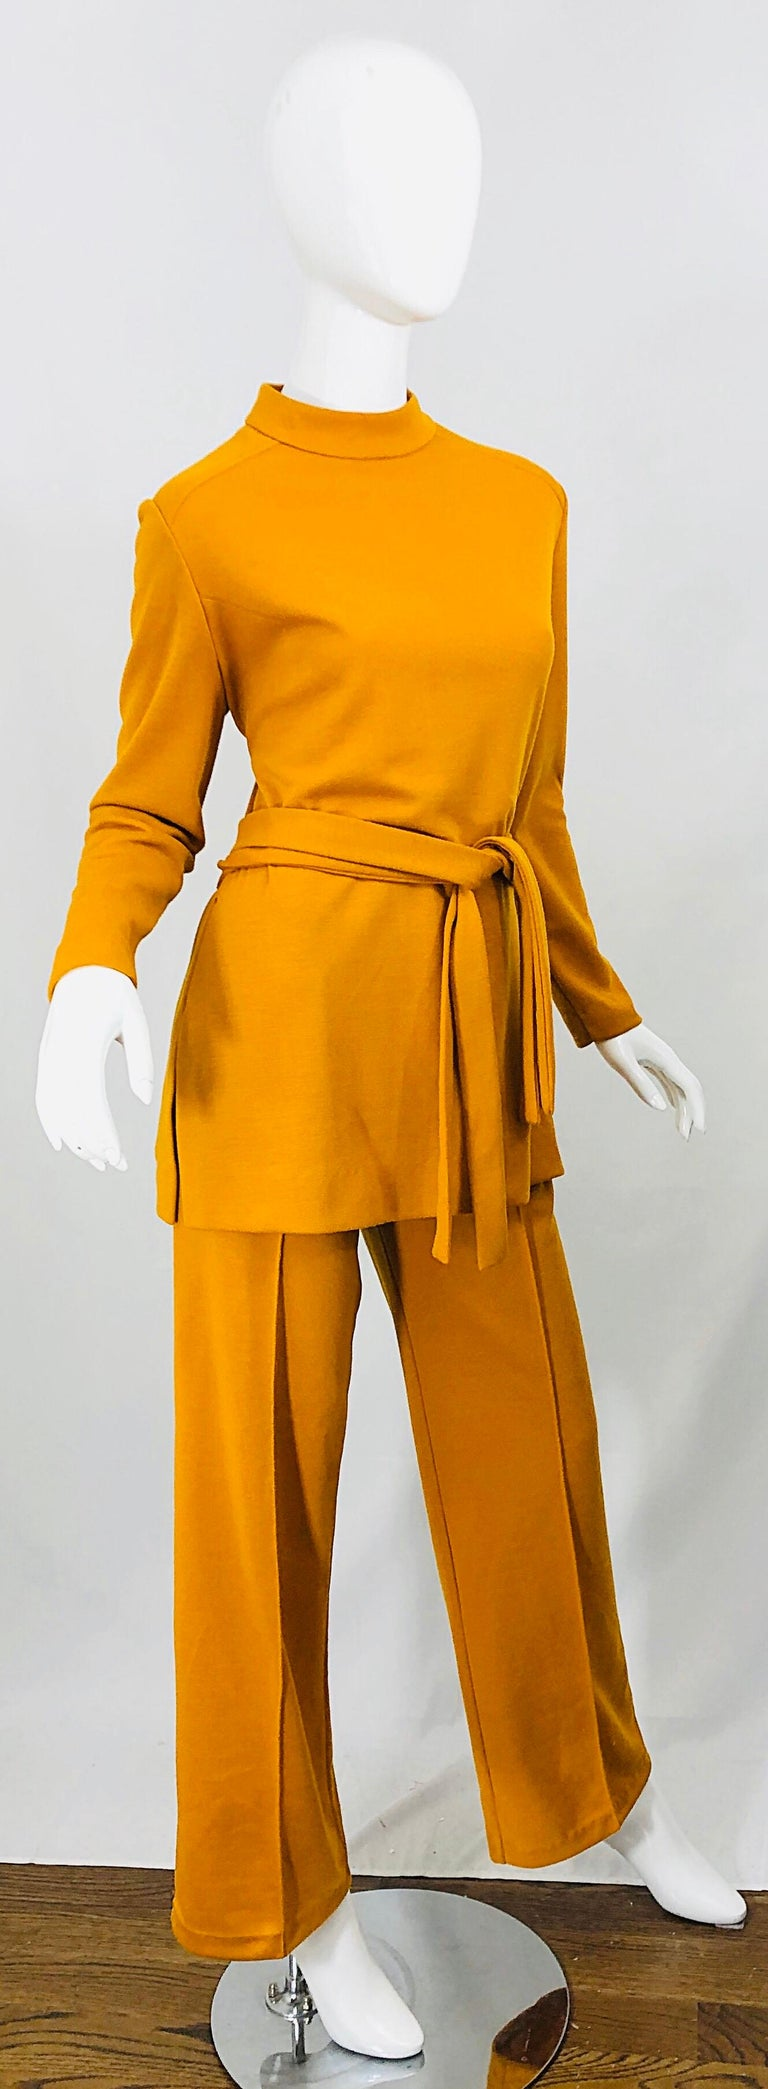 1970s Marigold Mustard Yellow Four Piece Vintage 70s Knit Shirt + Pants + Belt For Sale 4